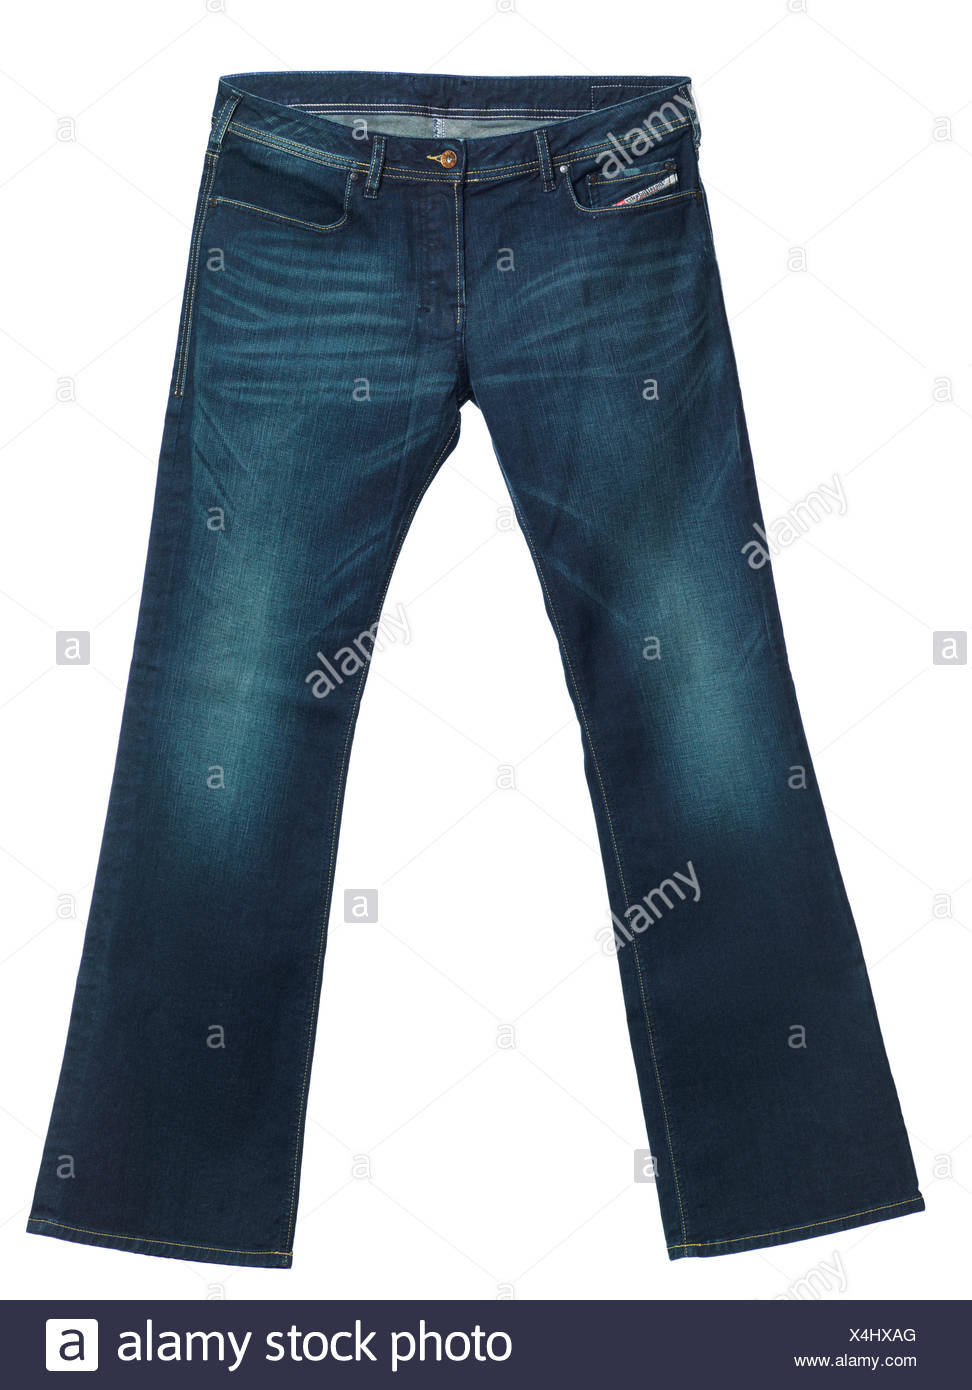 Diesel jeans Zathan, men's boot-cut washed denim pants Stock Photo